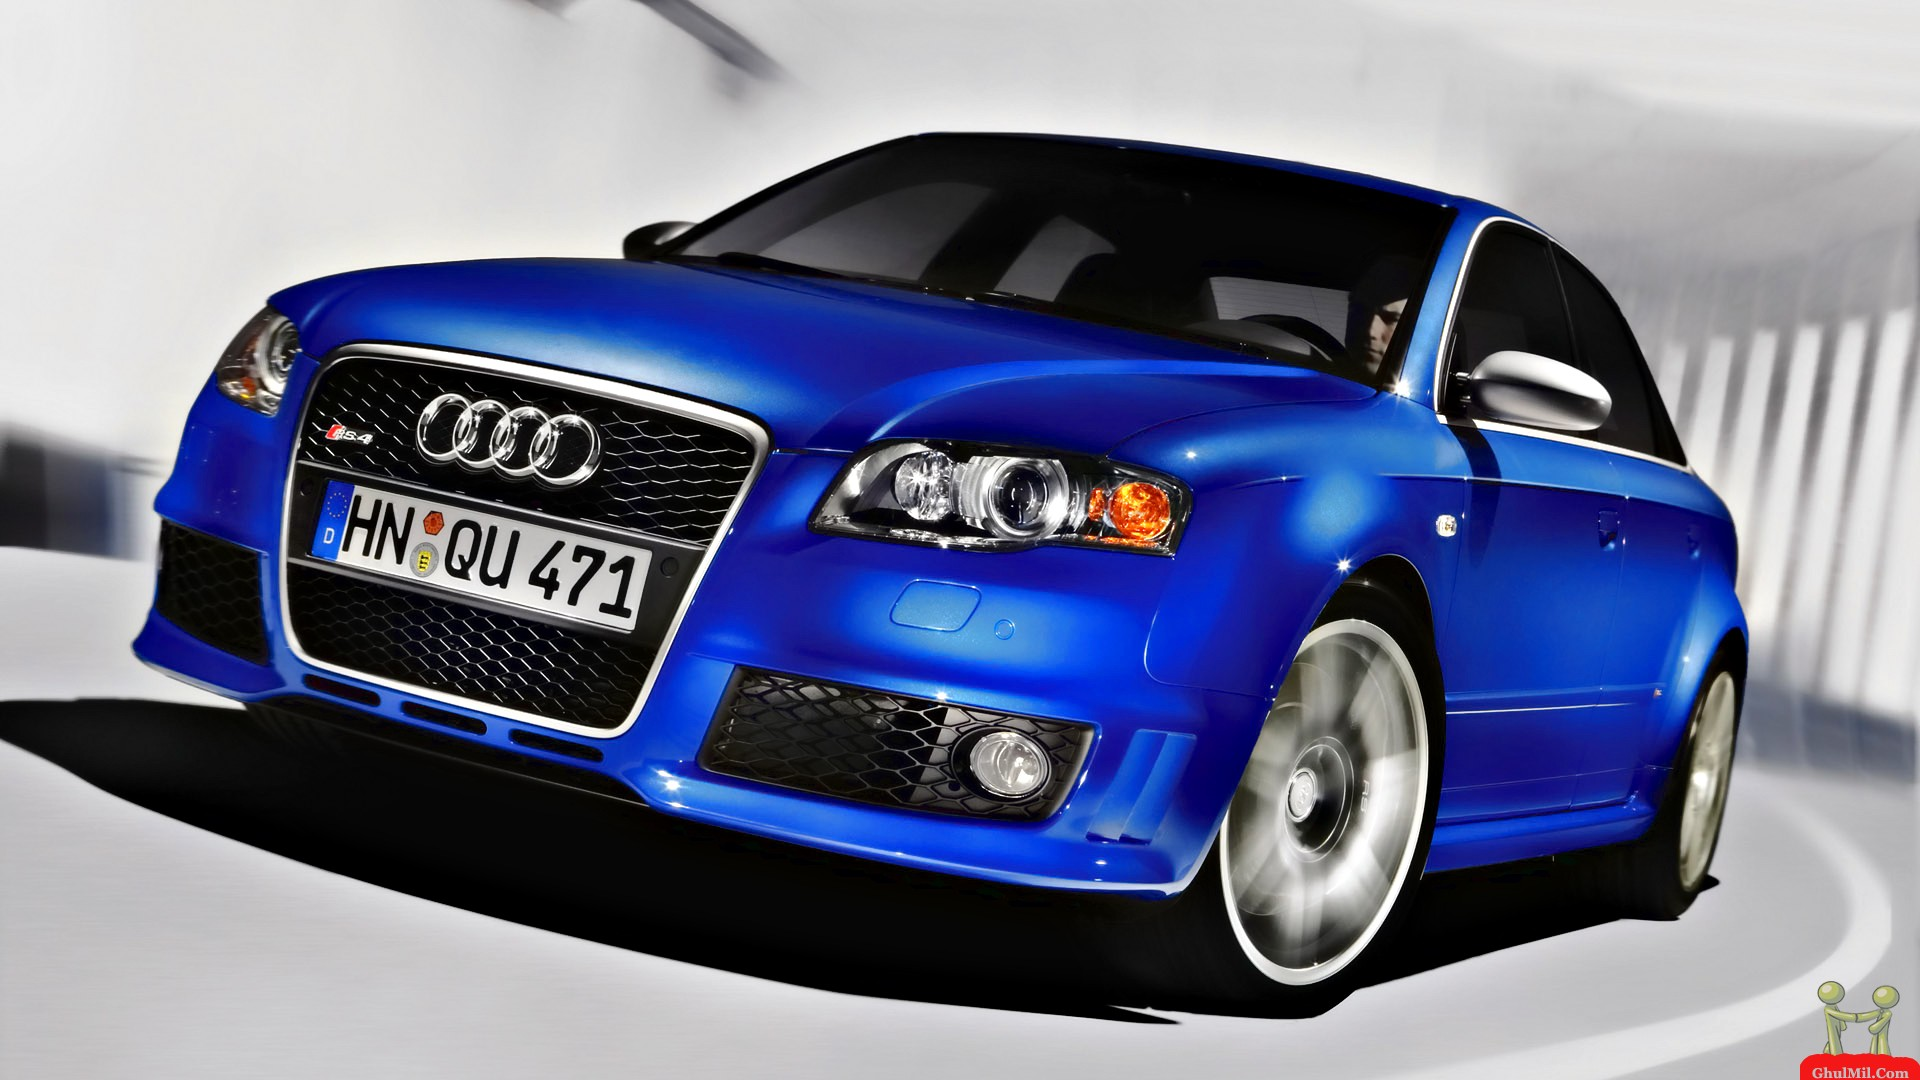 Blue Color Audi Car Wallpaper E Entertainment 1920x1080